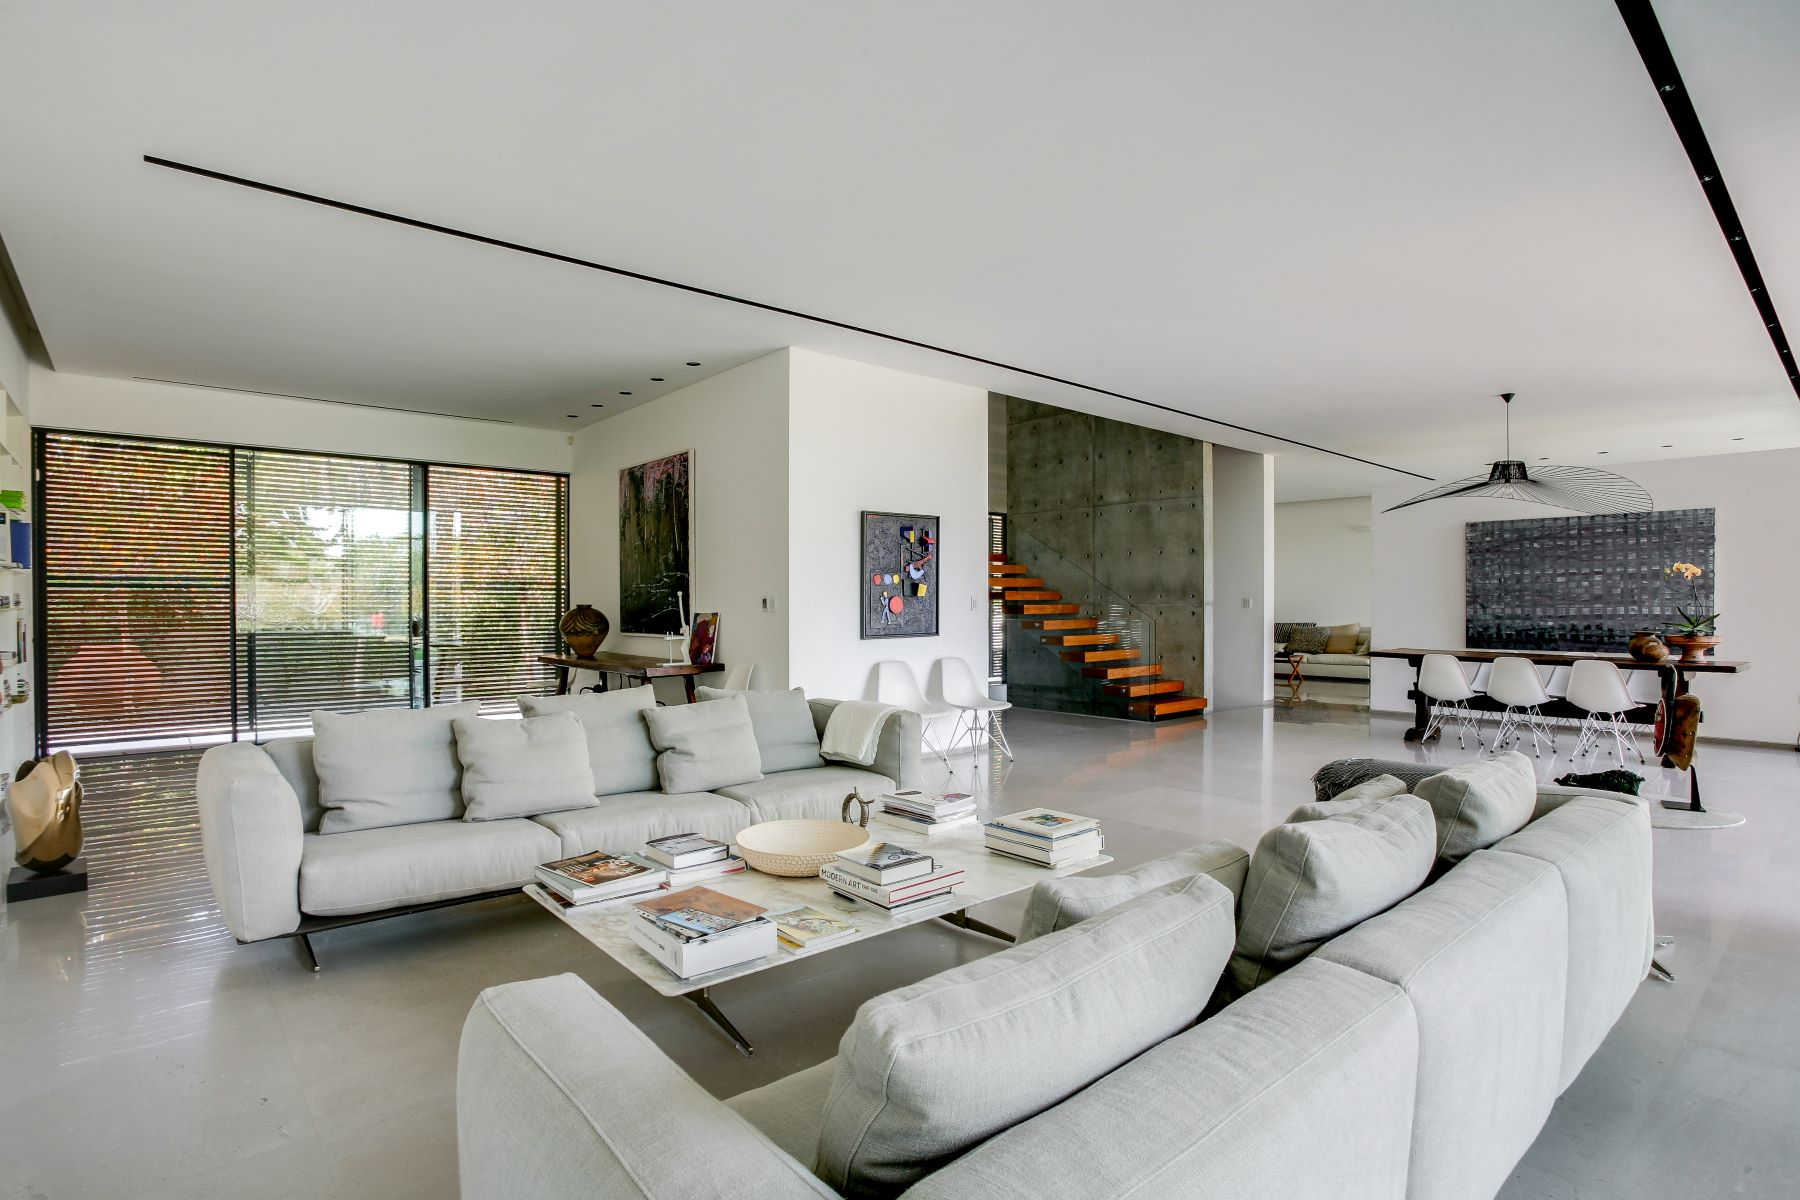 Additional photo for property listing at Exquisite Modern House Designed by Pitsou Kedem Kfar Shmaryahu, Israel Israel